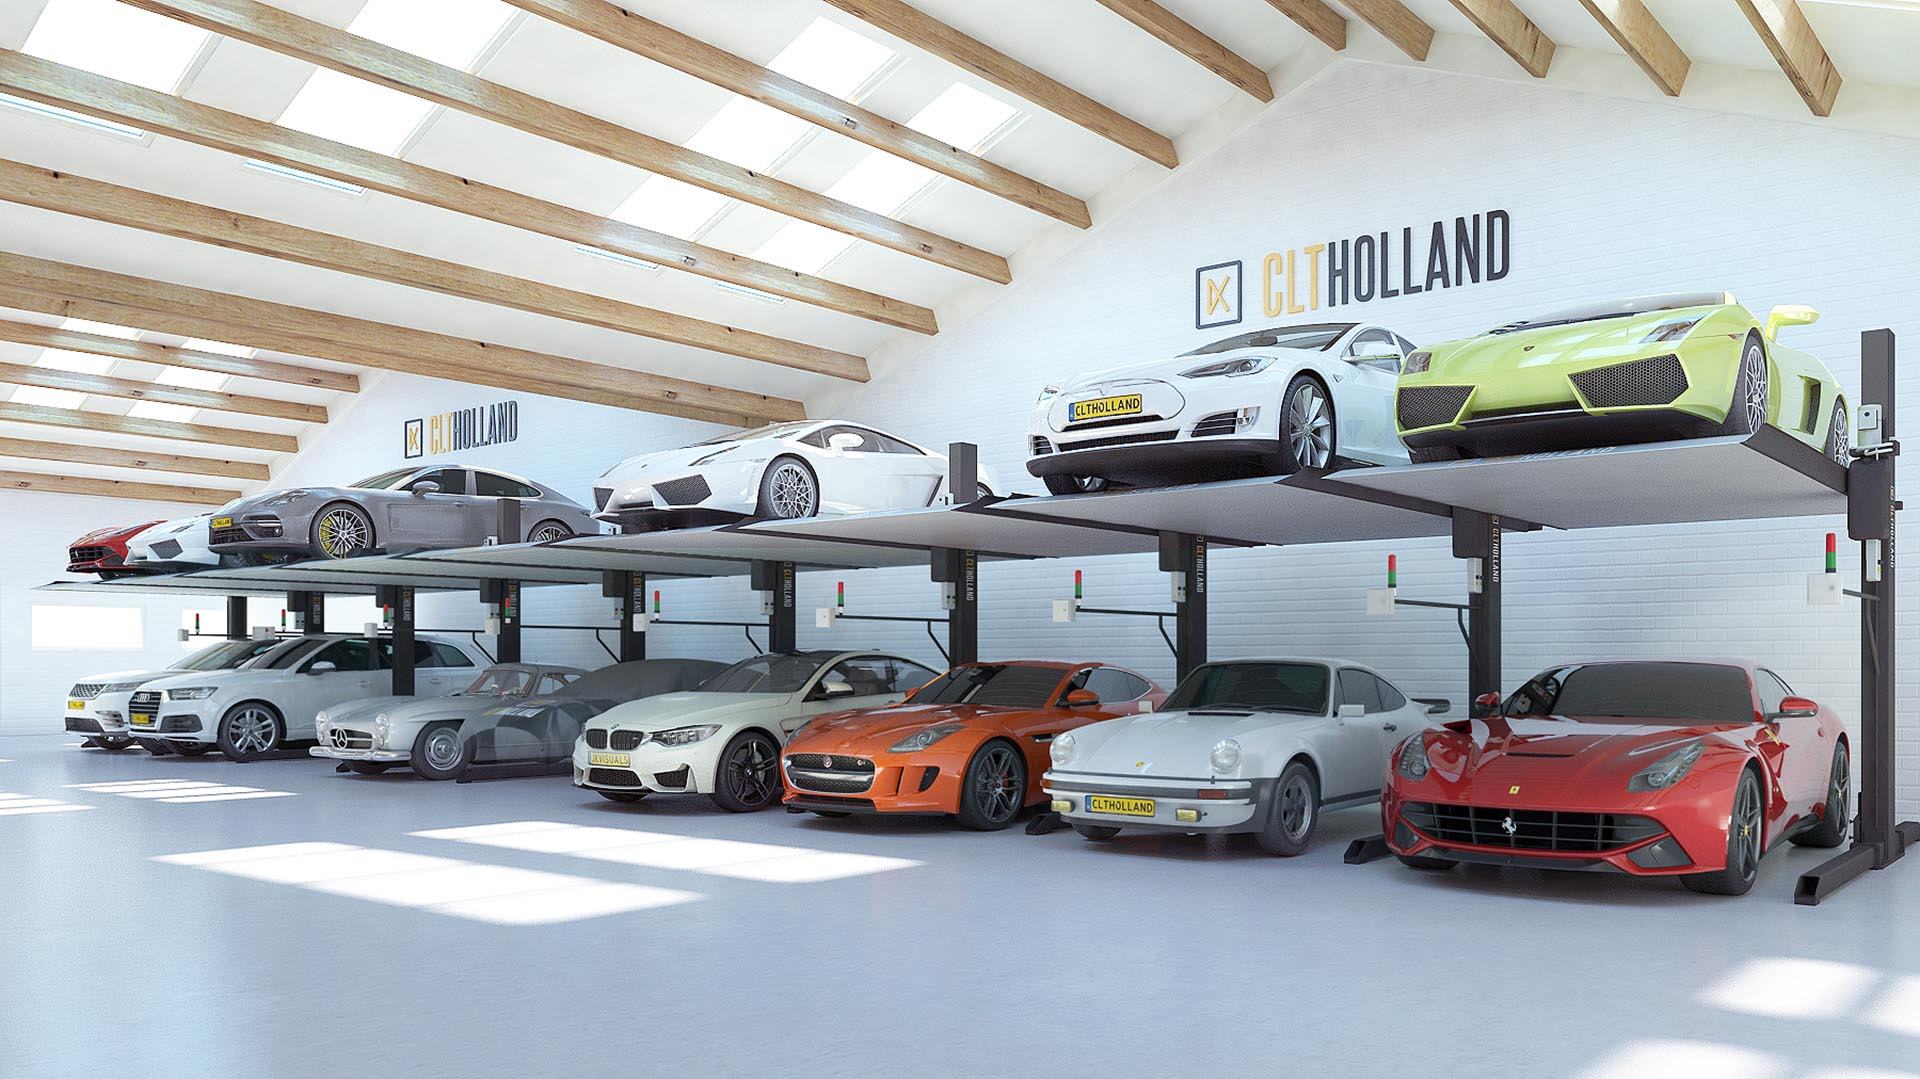 CLT Holland - Up Parker - Situatie showroom, autoverzamelaar of garage